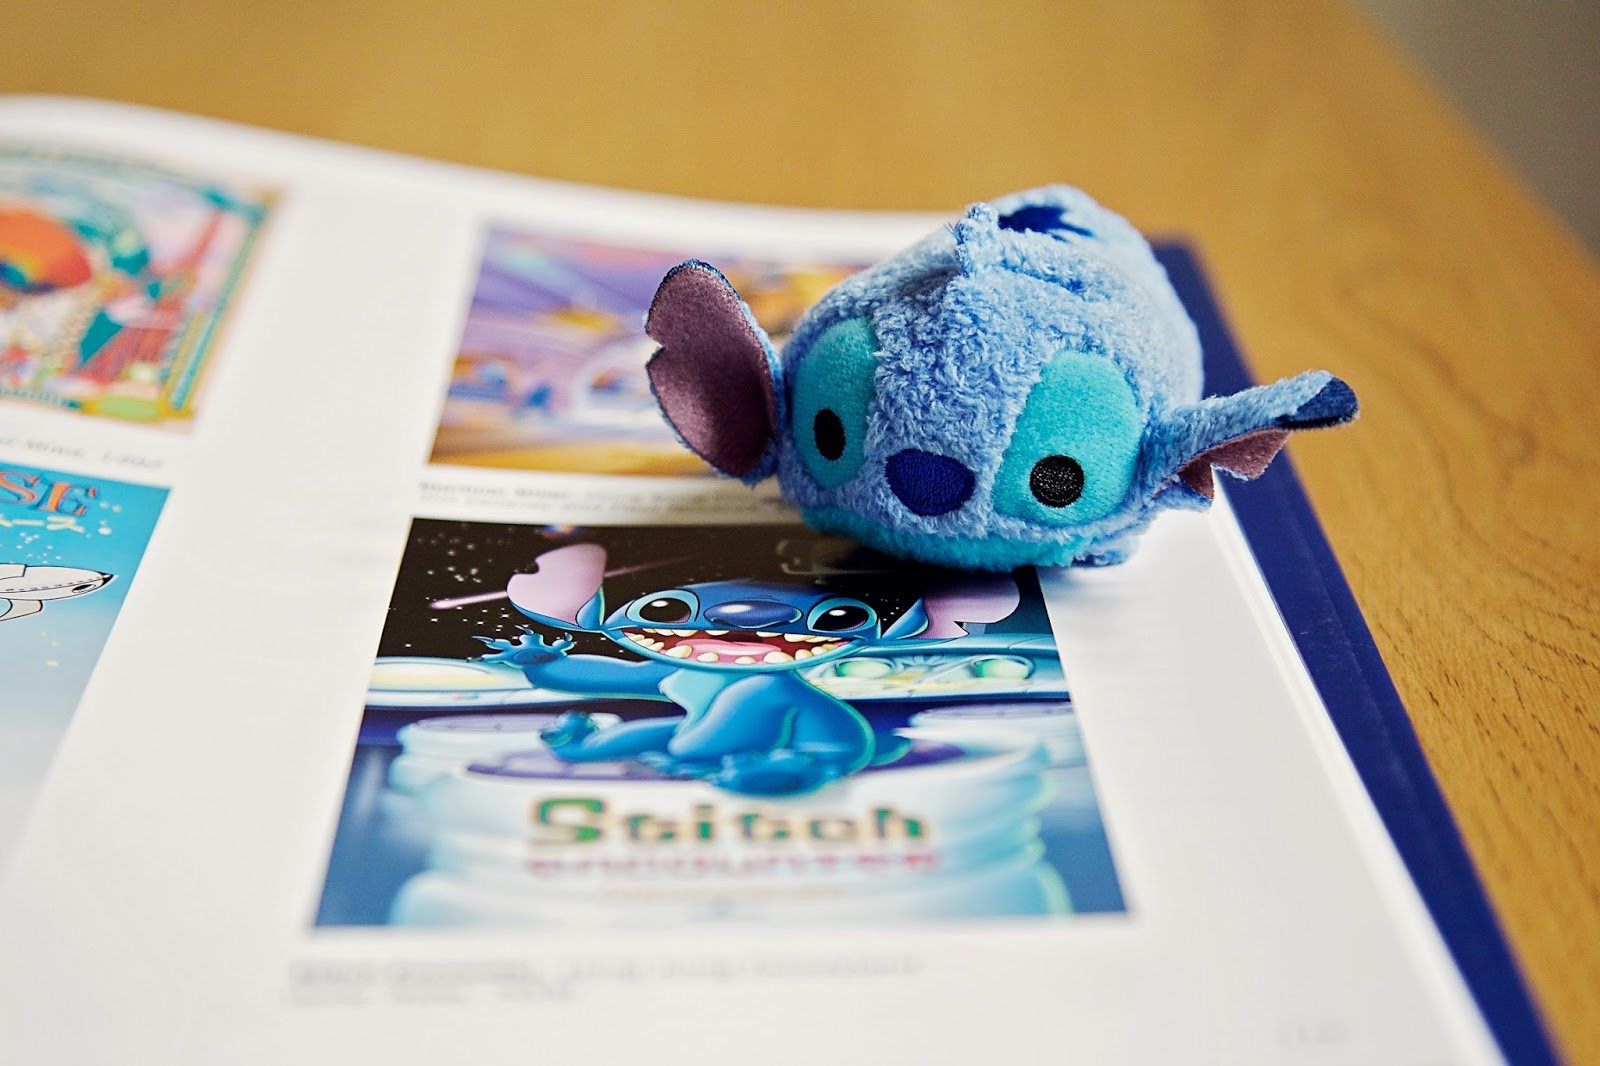 Disney Stitch Tsum Tsum on top of Stitch image.